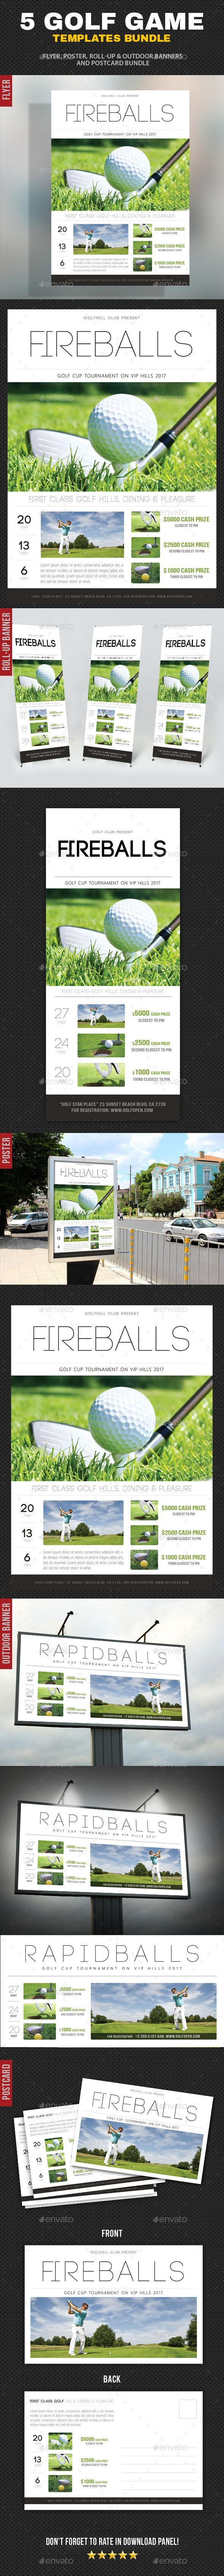 5 in 1 Golf Game Bundle by rapidgraf 5 High impact Golf Sport Activity Template Layouts, perfect for golf, sport, game, competition, tournament or any sport activity e -> Für Golf SALE und Golf Bestseller klicken!